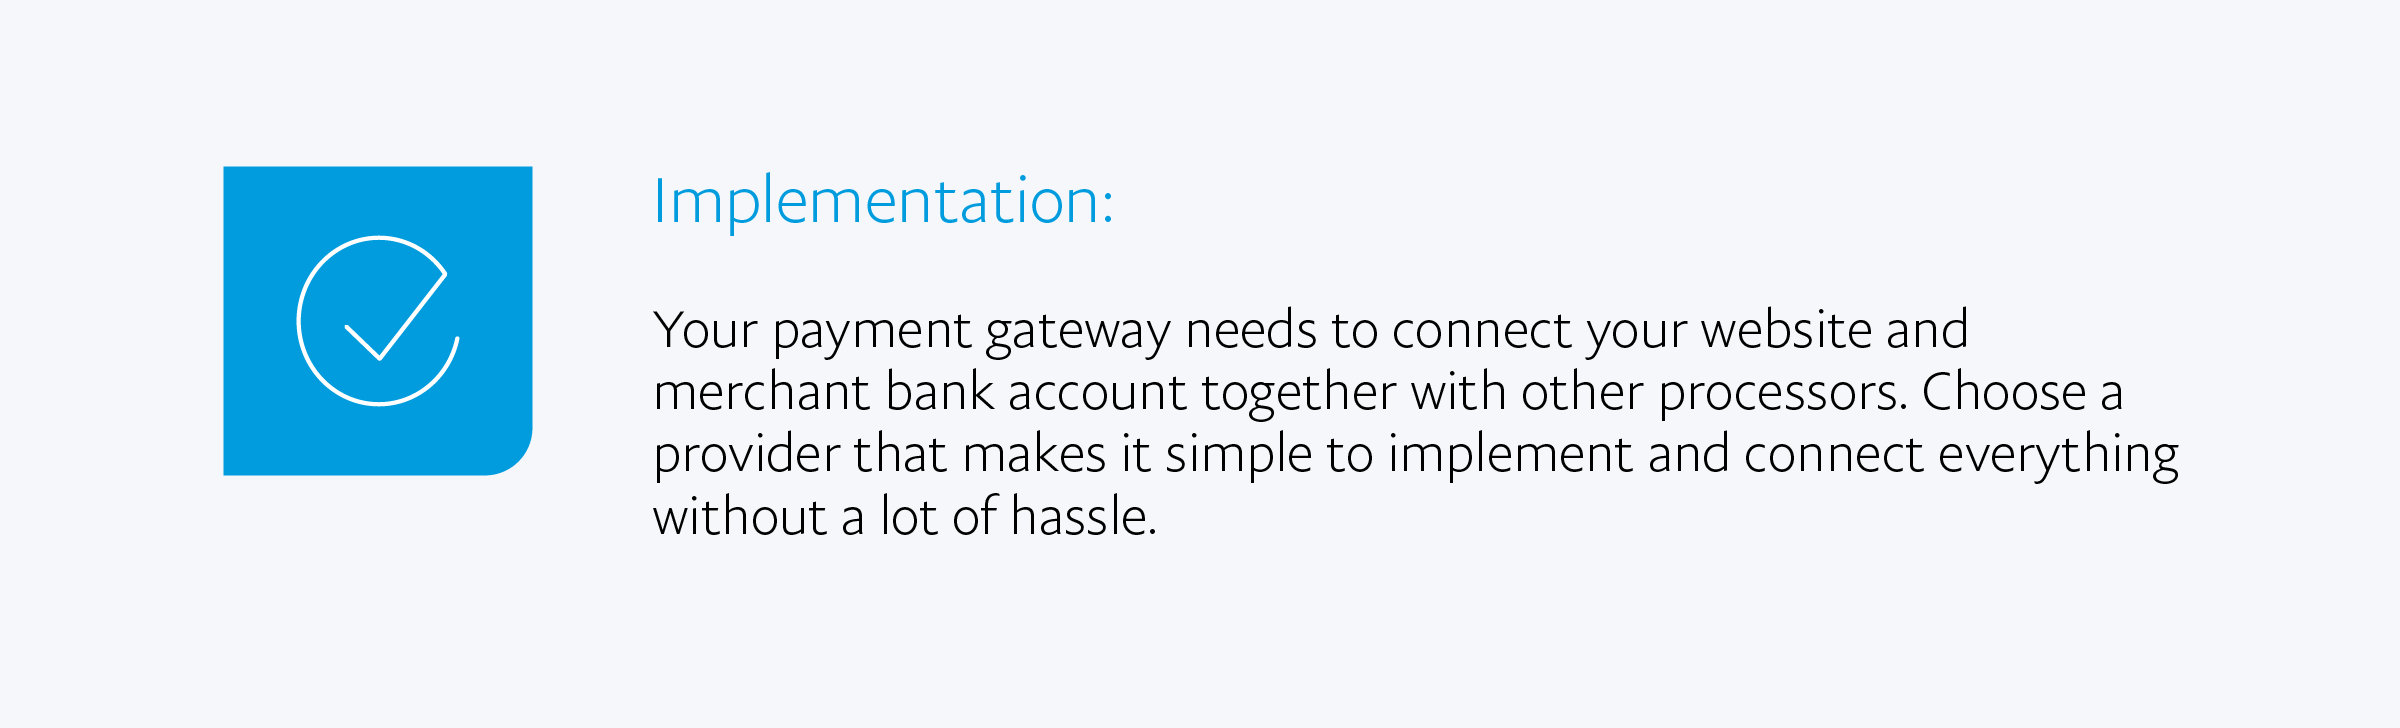 Implementation: Your payment gateway needs to connect your website and merchant bank account together with other processors. Choose a provider that makes it simple to implement and connect everything without a lot of hassle.